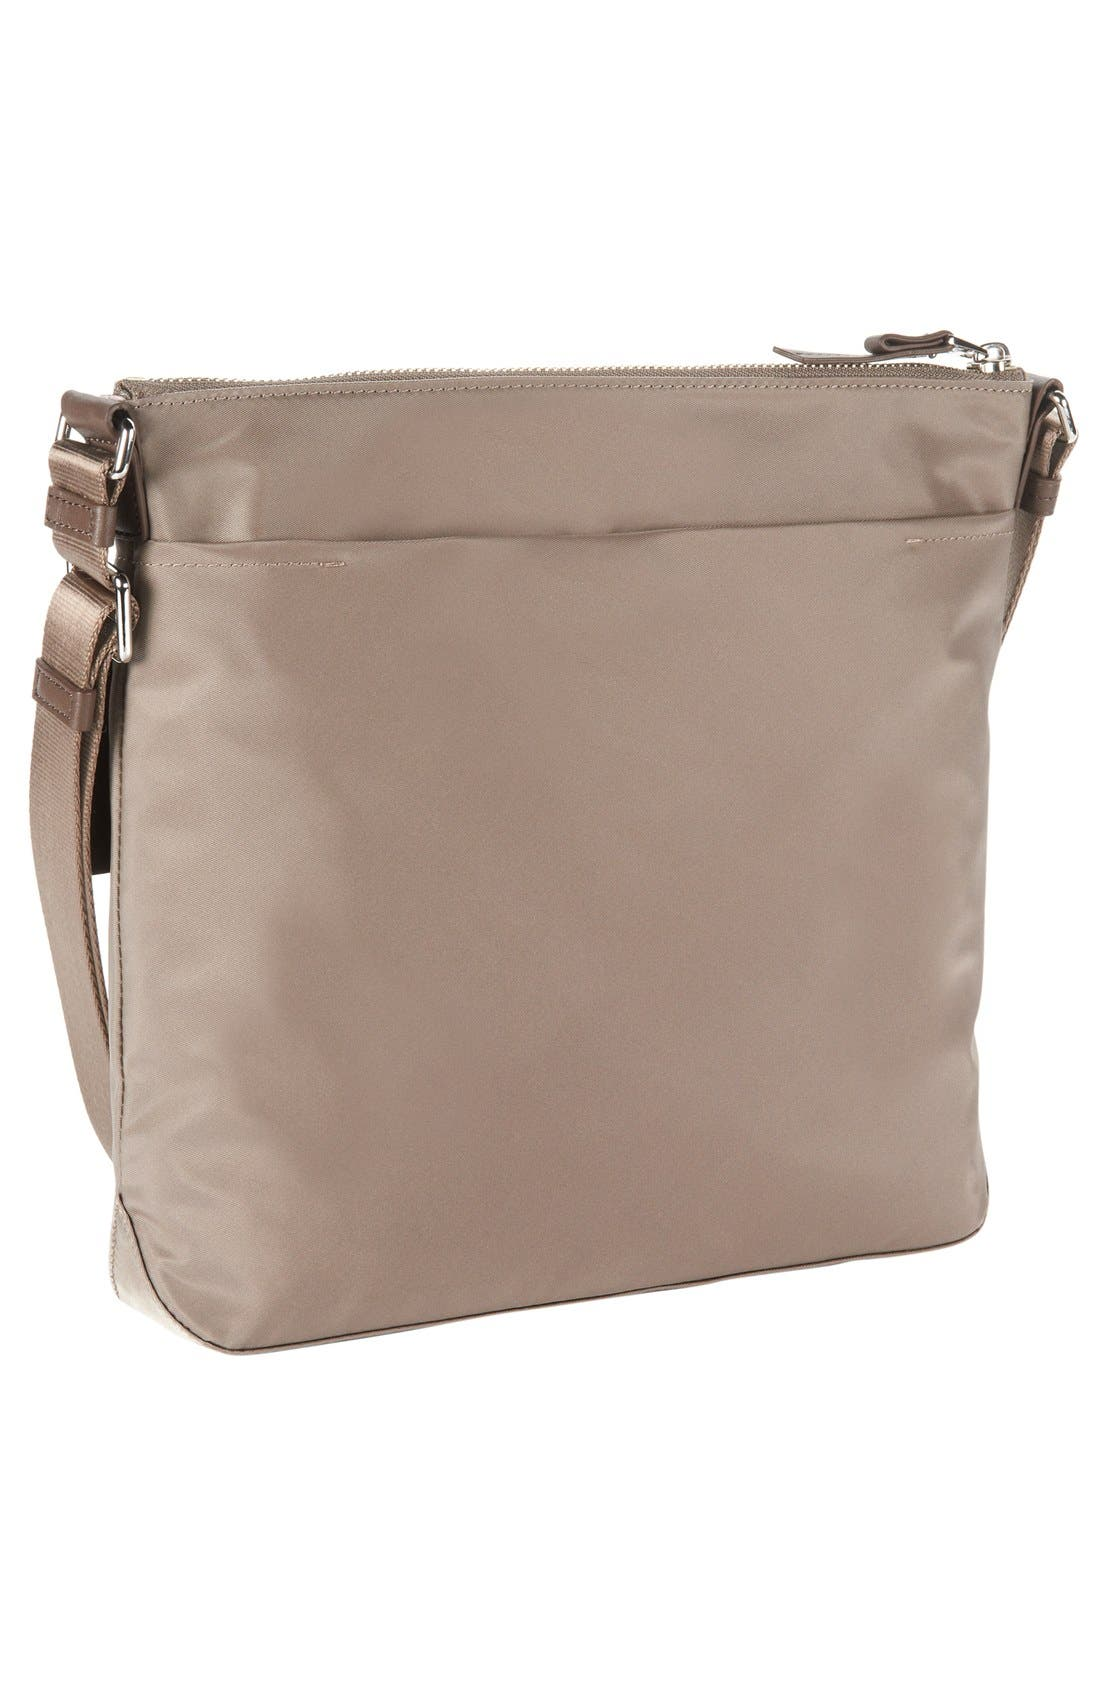 Alternate Image 3  - Tumi 'Voyageur - Capri' Crossbody Bag